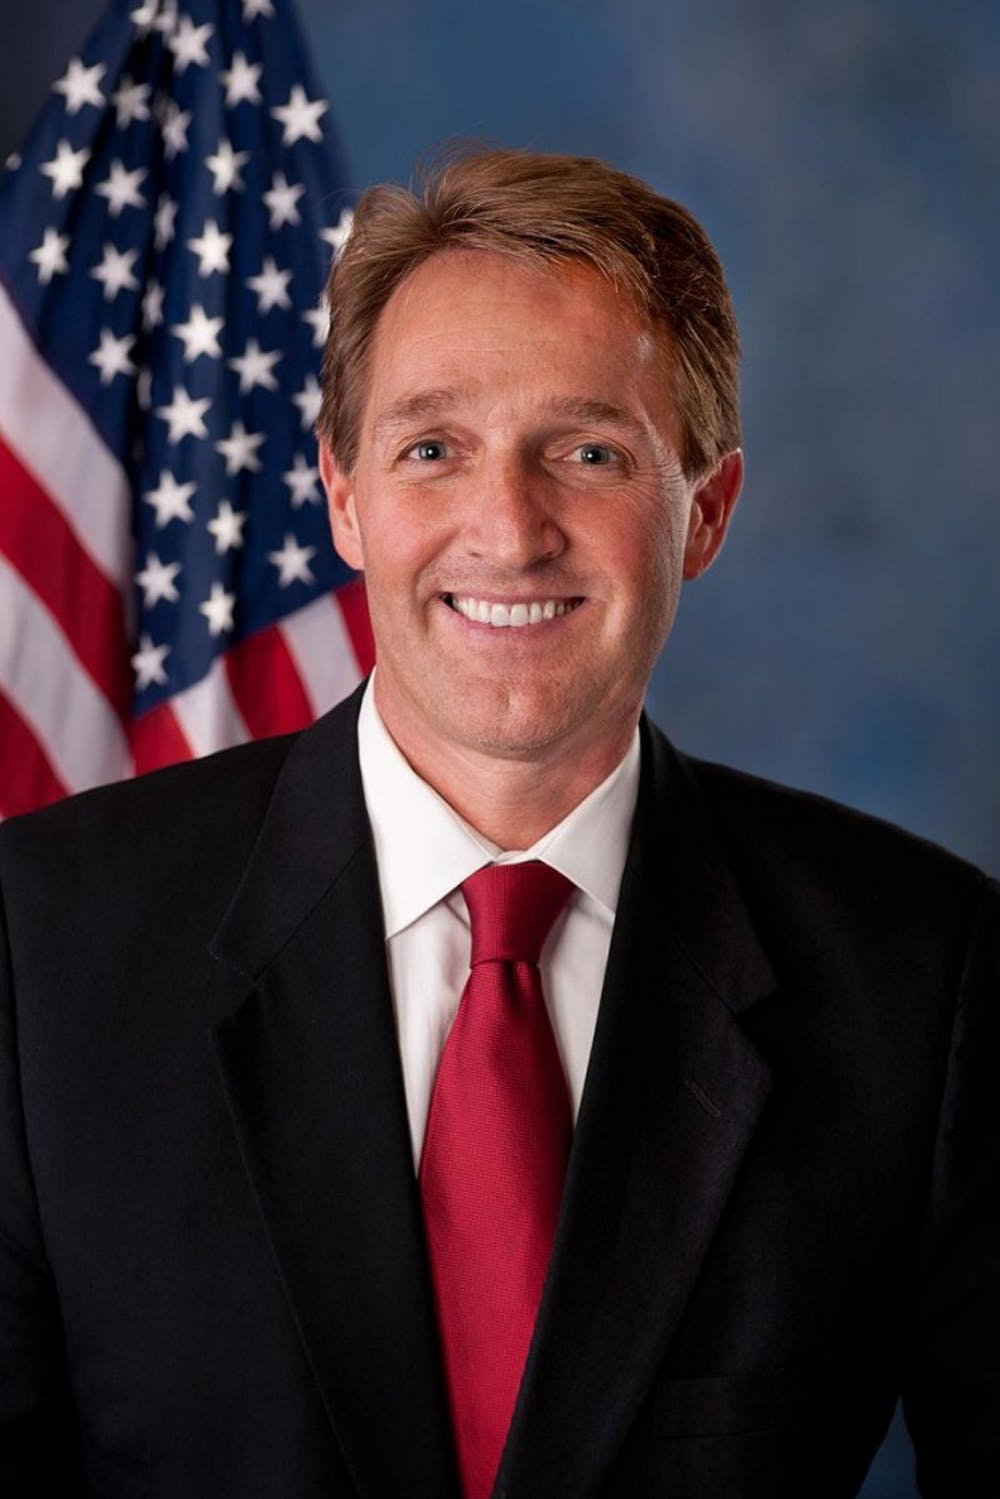 800px-jeff-flake-official-portrait-112th-congress-2